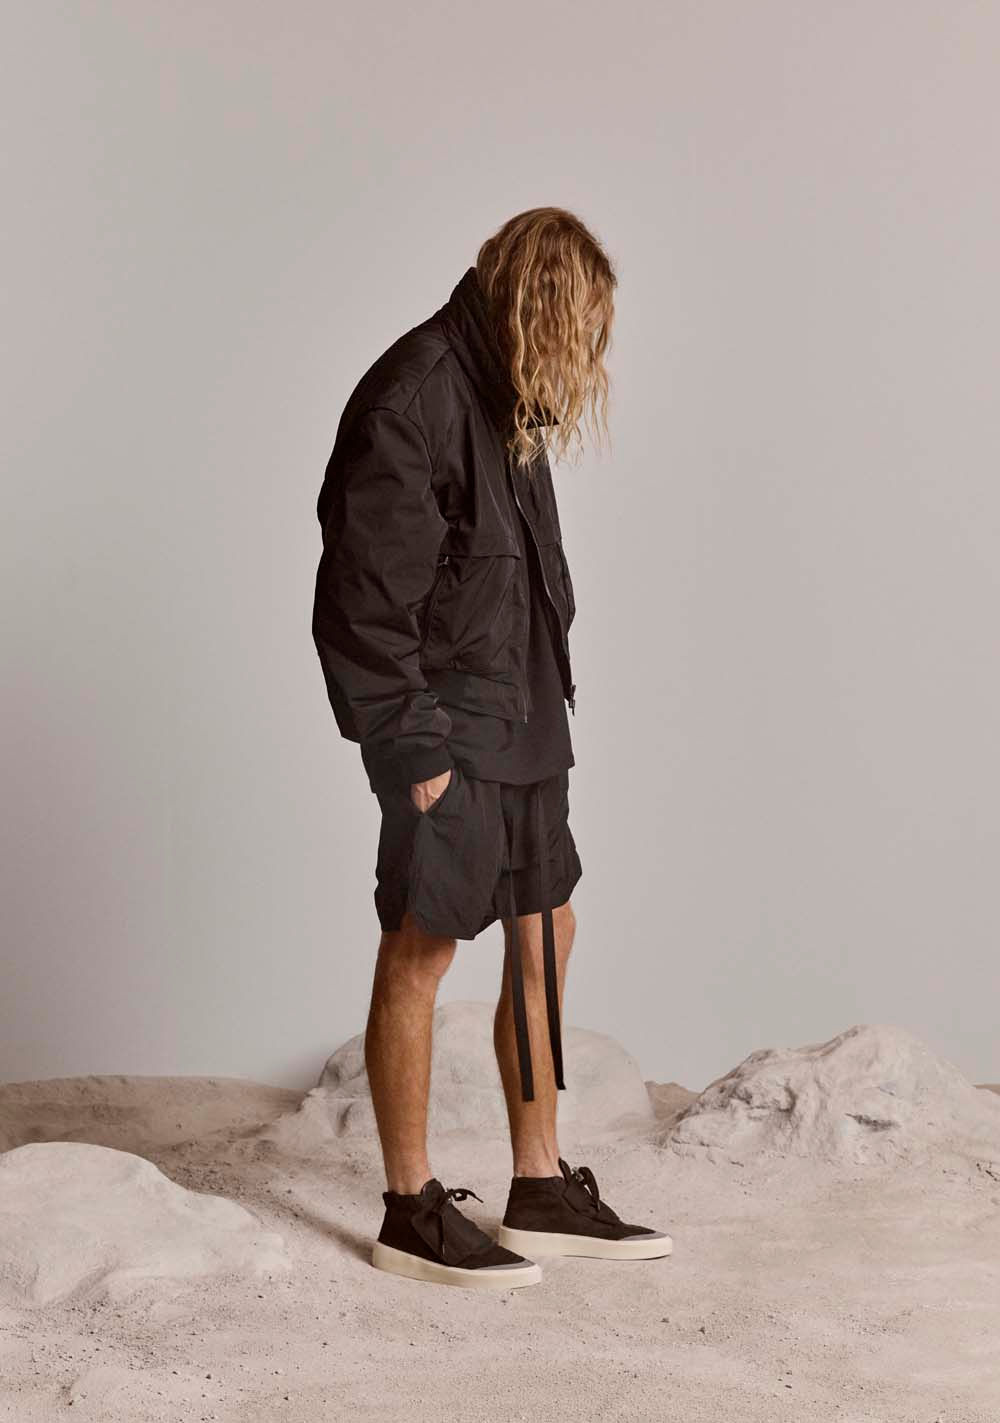 https_%2F%2Fhypebeast.com%2Fimage%2F2018%2F09%2Ffear-of-god-6-sixth-collection-jared-leto-nike-79.jpg